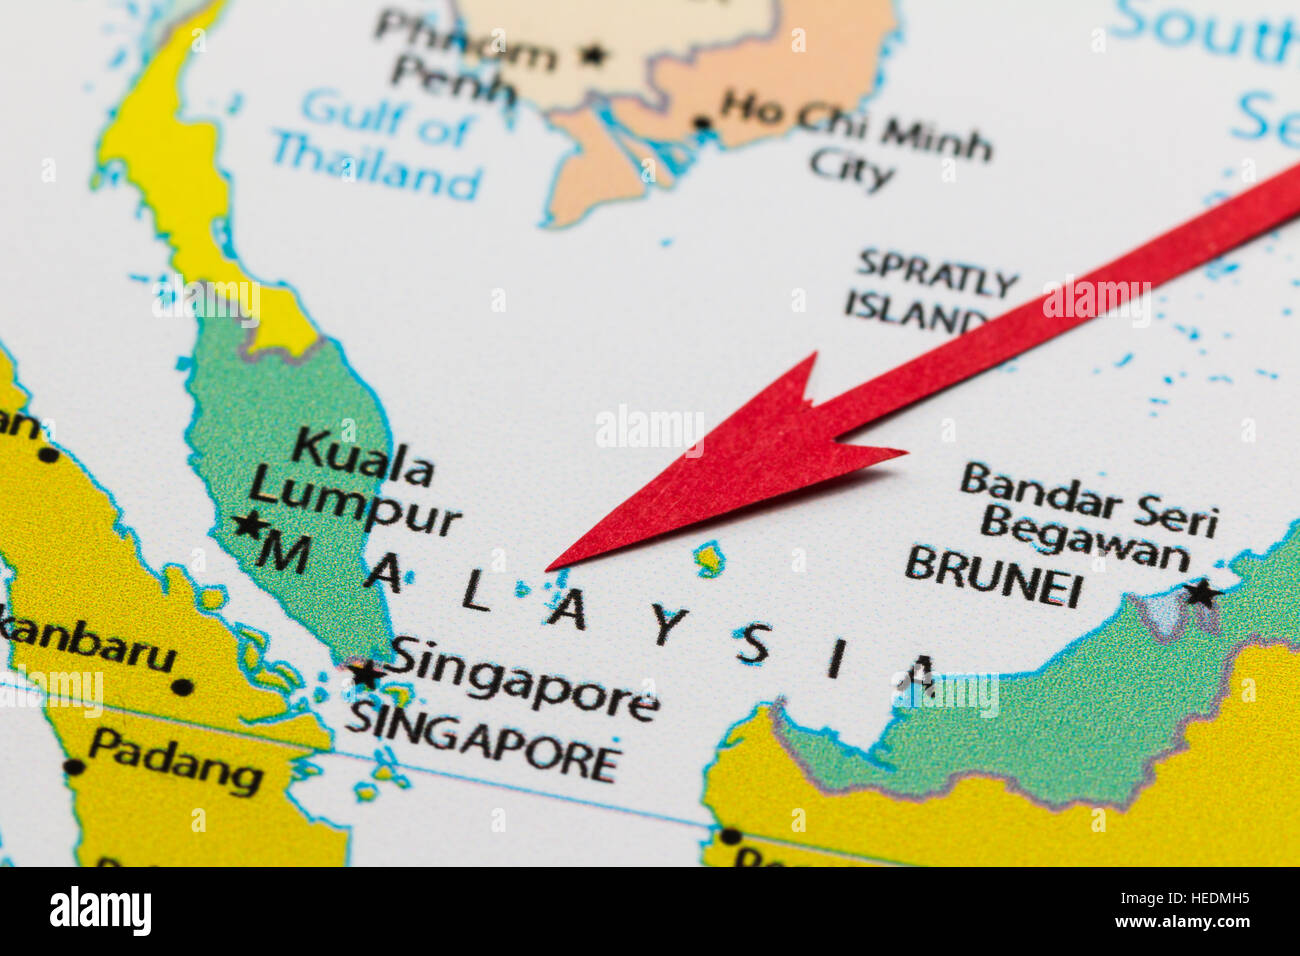 Red arrow pointing Malaysia on the map of Asia continent Stock Photo